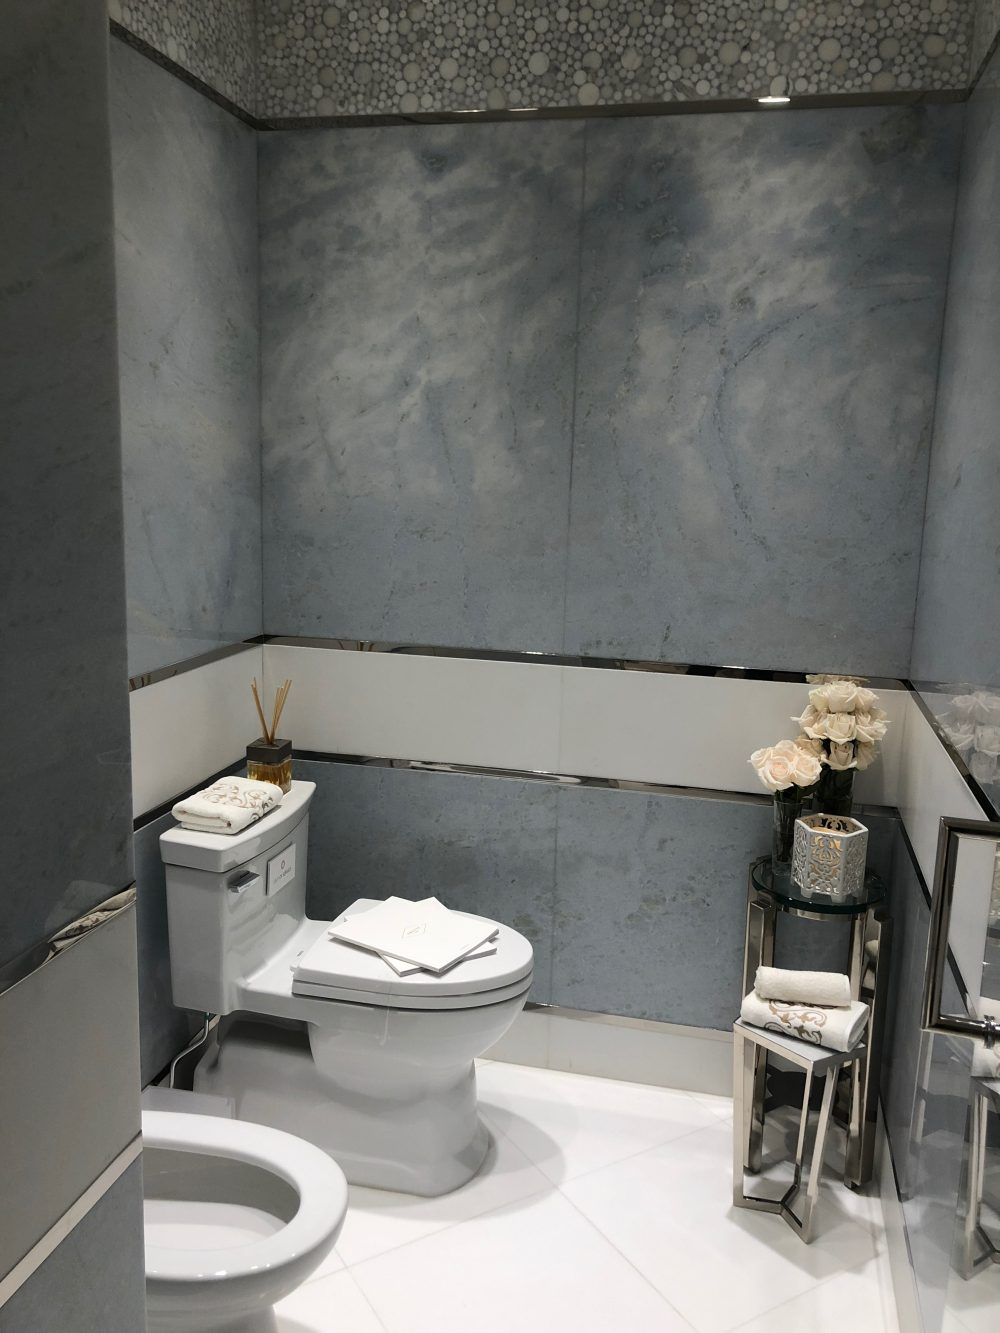 Large-scale or slab tiles are ideal for mixing with other styles of tile.